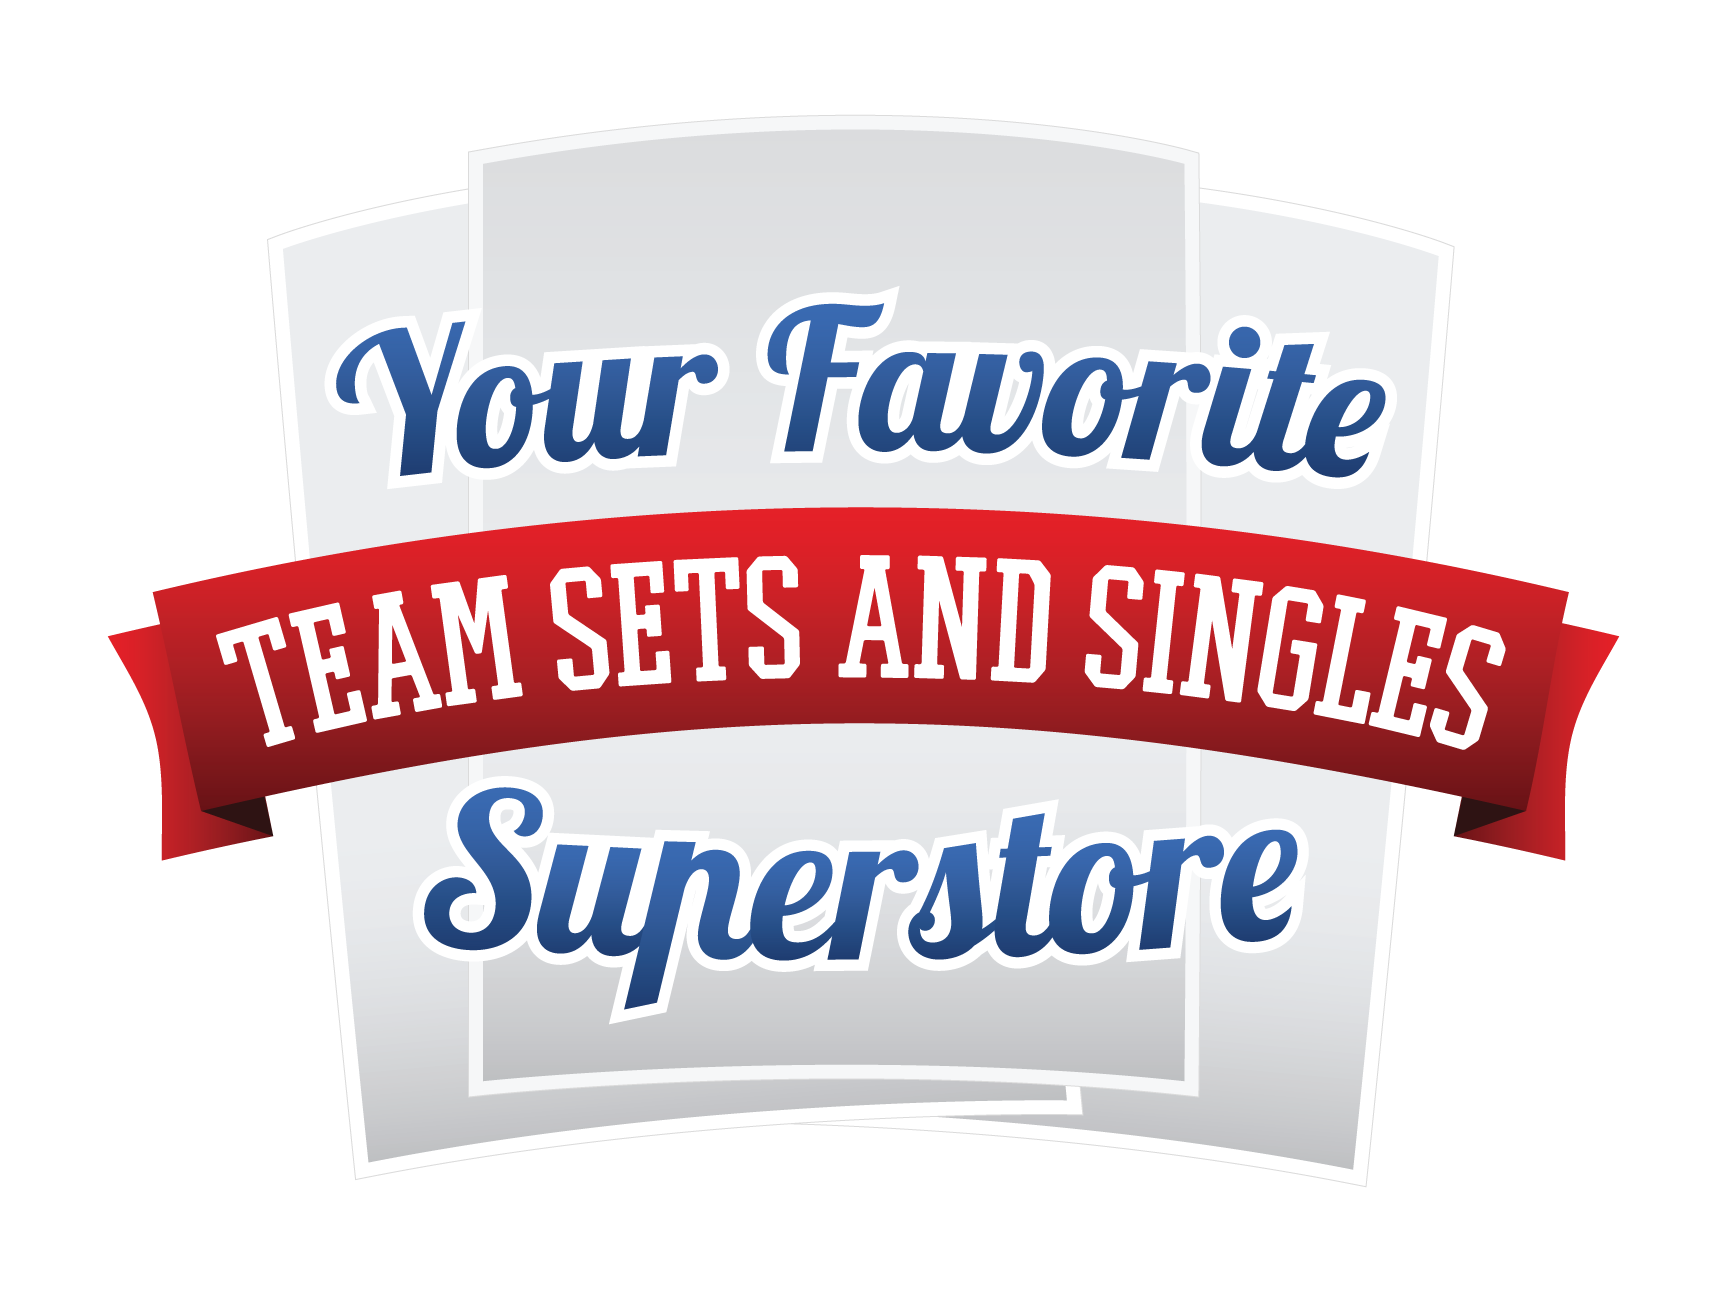 Your Favorite Team Sets & Singles